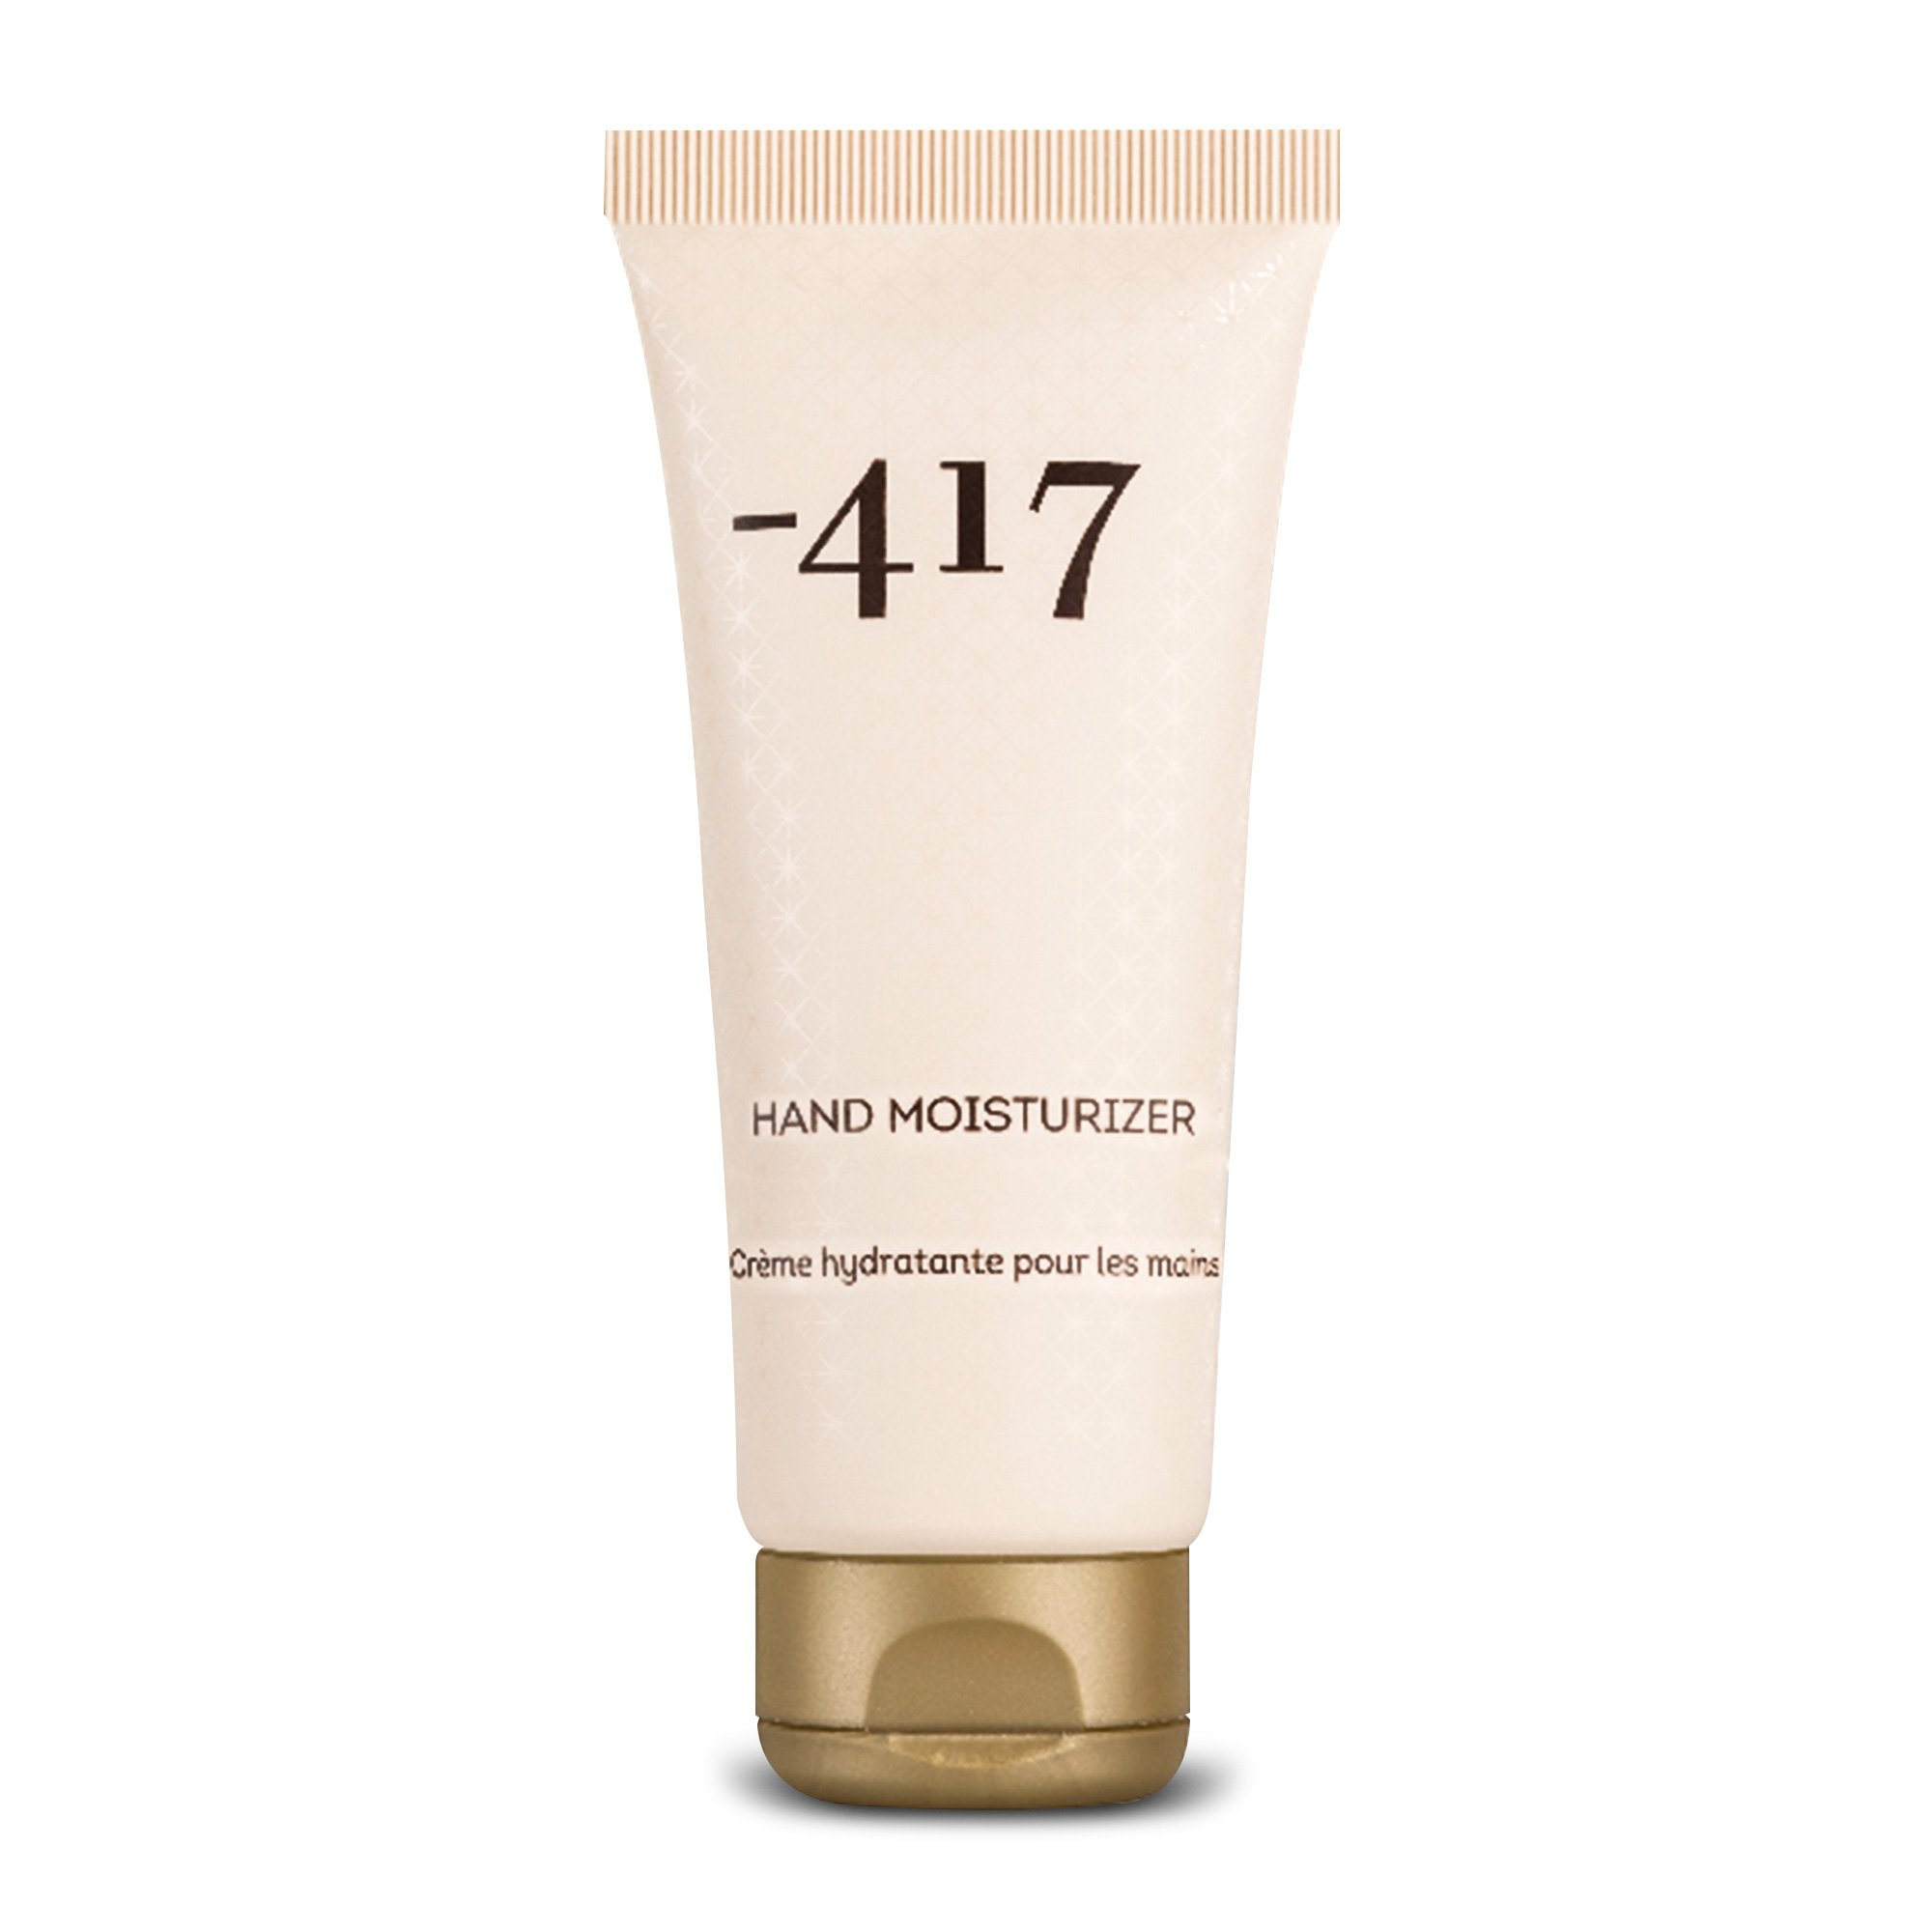 Anti Aging Hand Cream For Dry Cracked Skin (Hand Cream) by -417